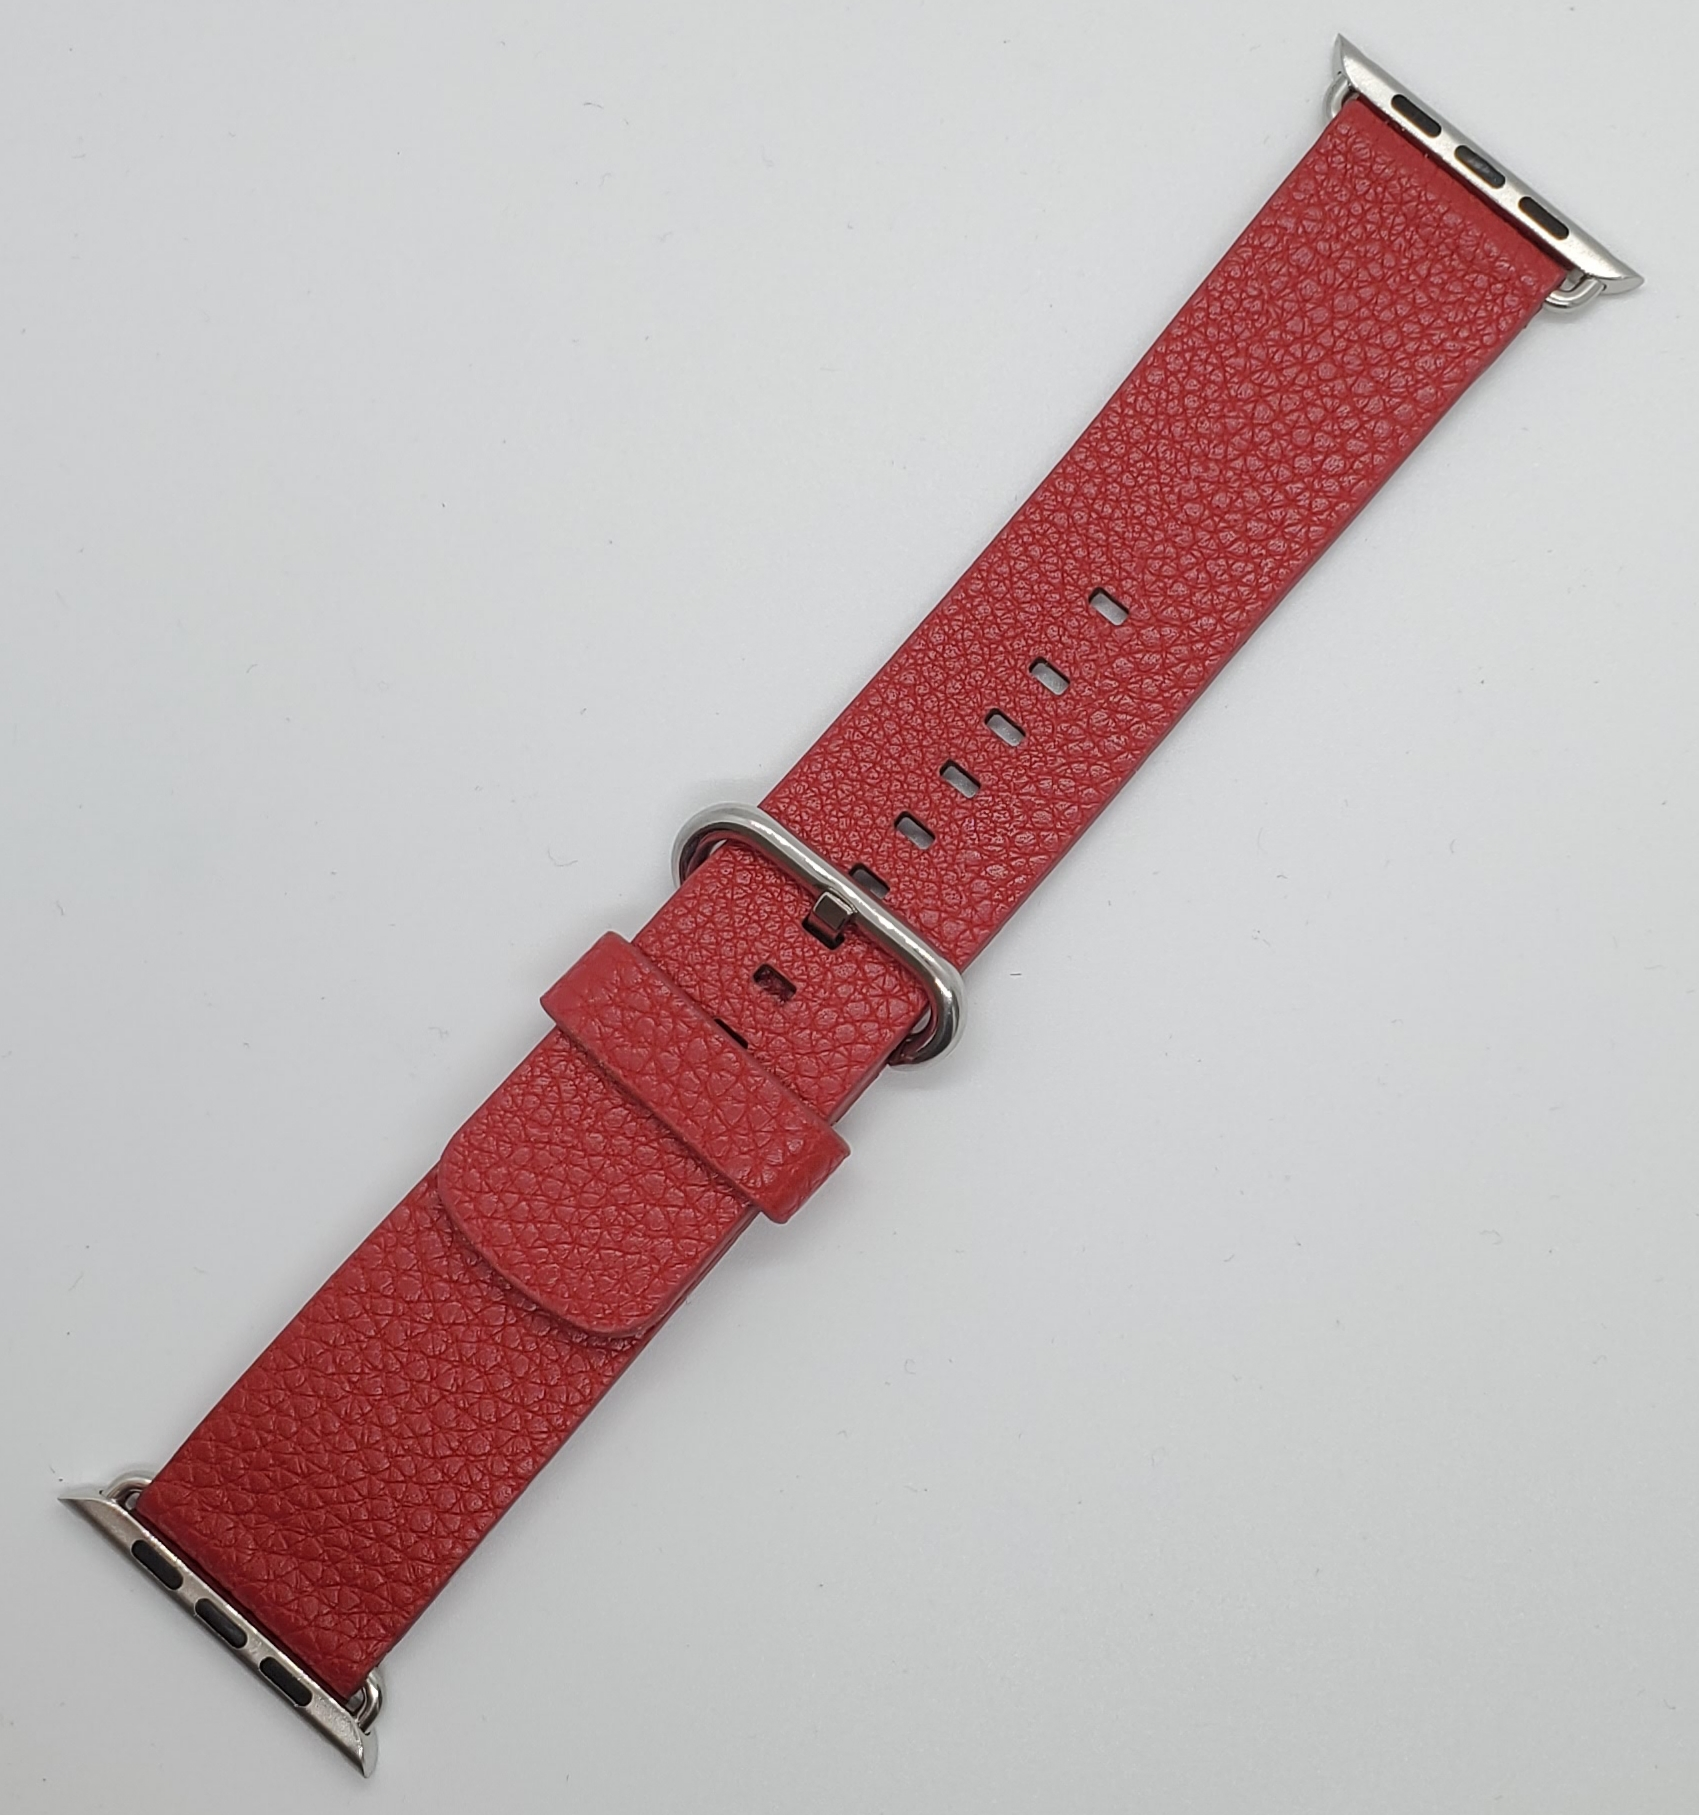 Genuine Leather Band Strap For Apple Watch Series 42mm Red